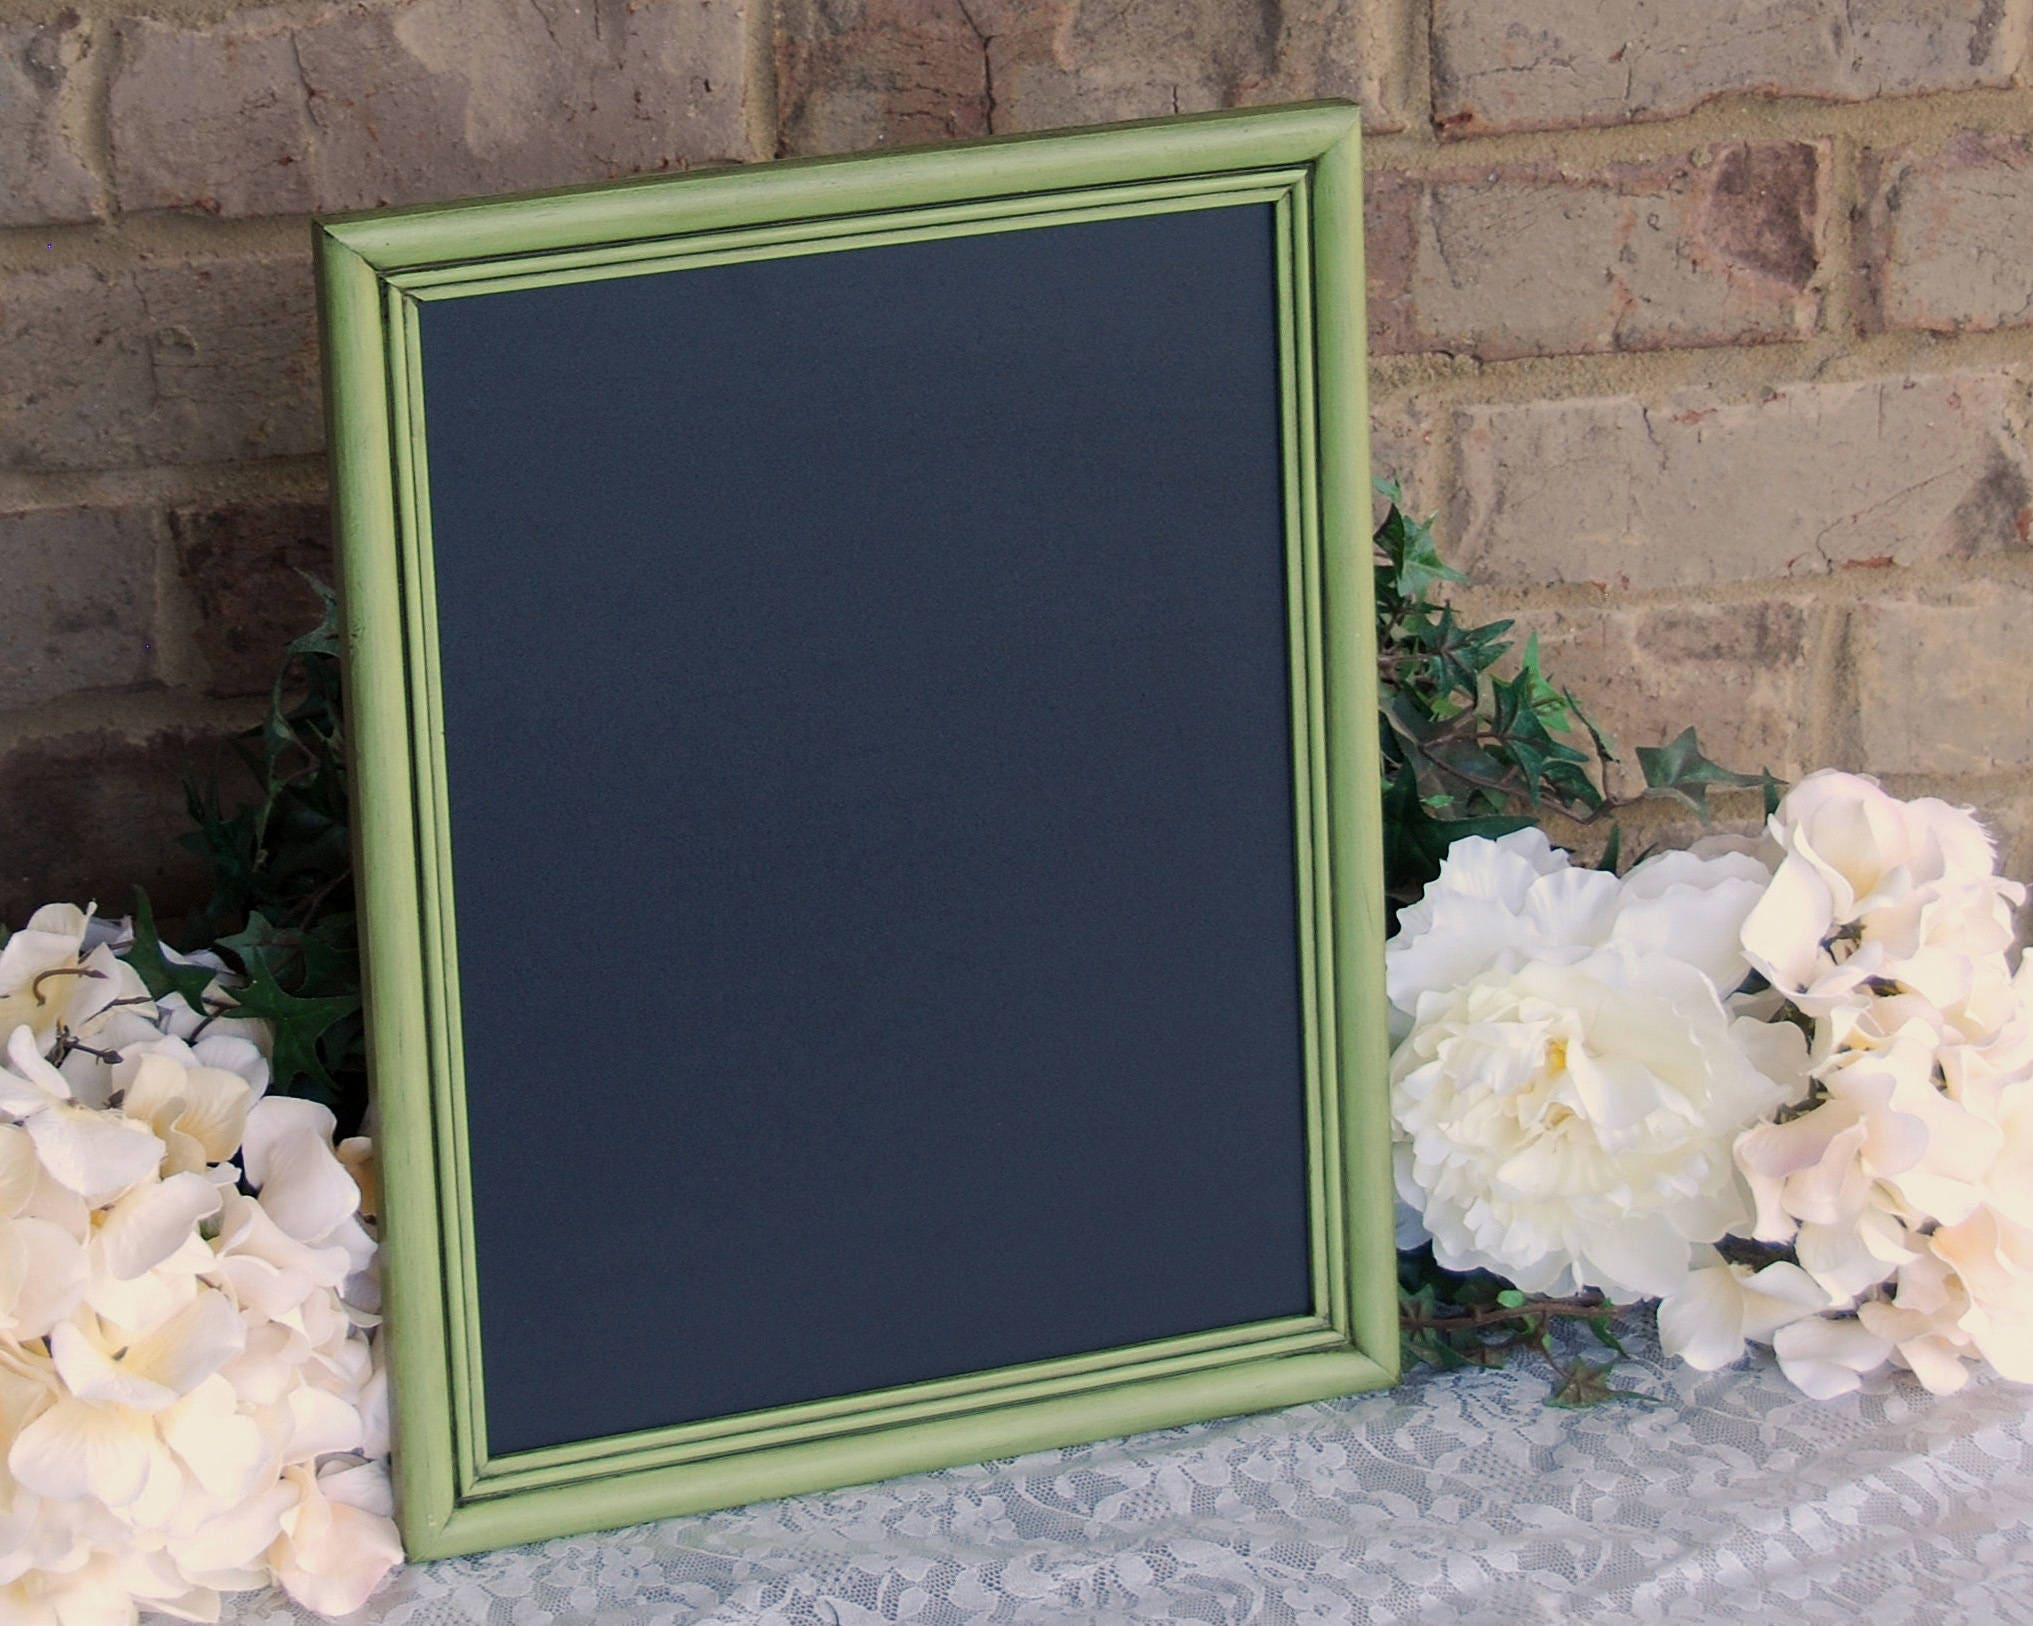 Country Farmhouse Framed Chalkboard Vintage Apple Green 10x13 Il Fullxfull  Country Farmhouse Framed Chalkboard Vintage Apple Green 10x13 Chalkboard  Kitchen ...